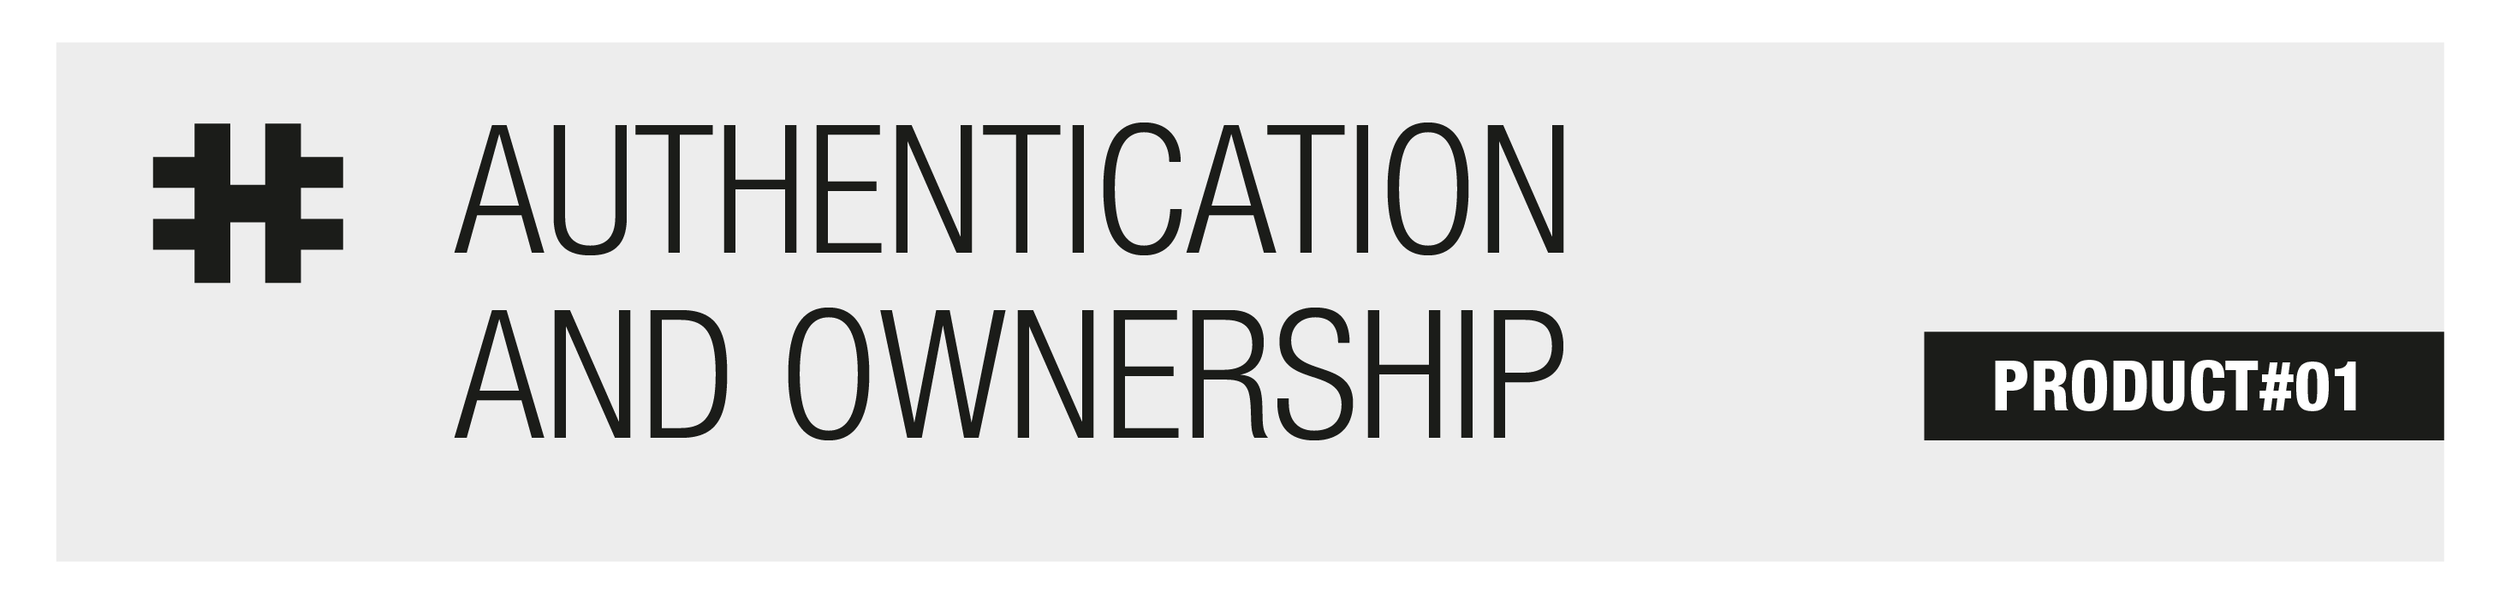 Go to PRODUCT#01 Authentication of ownership